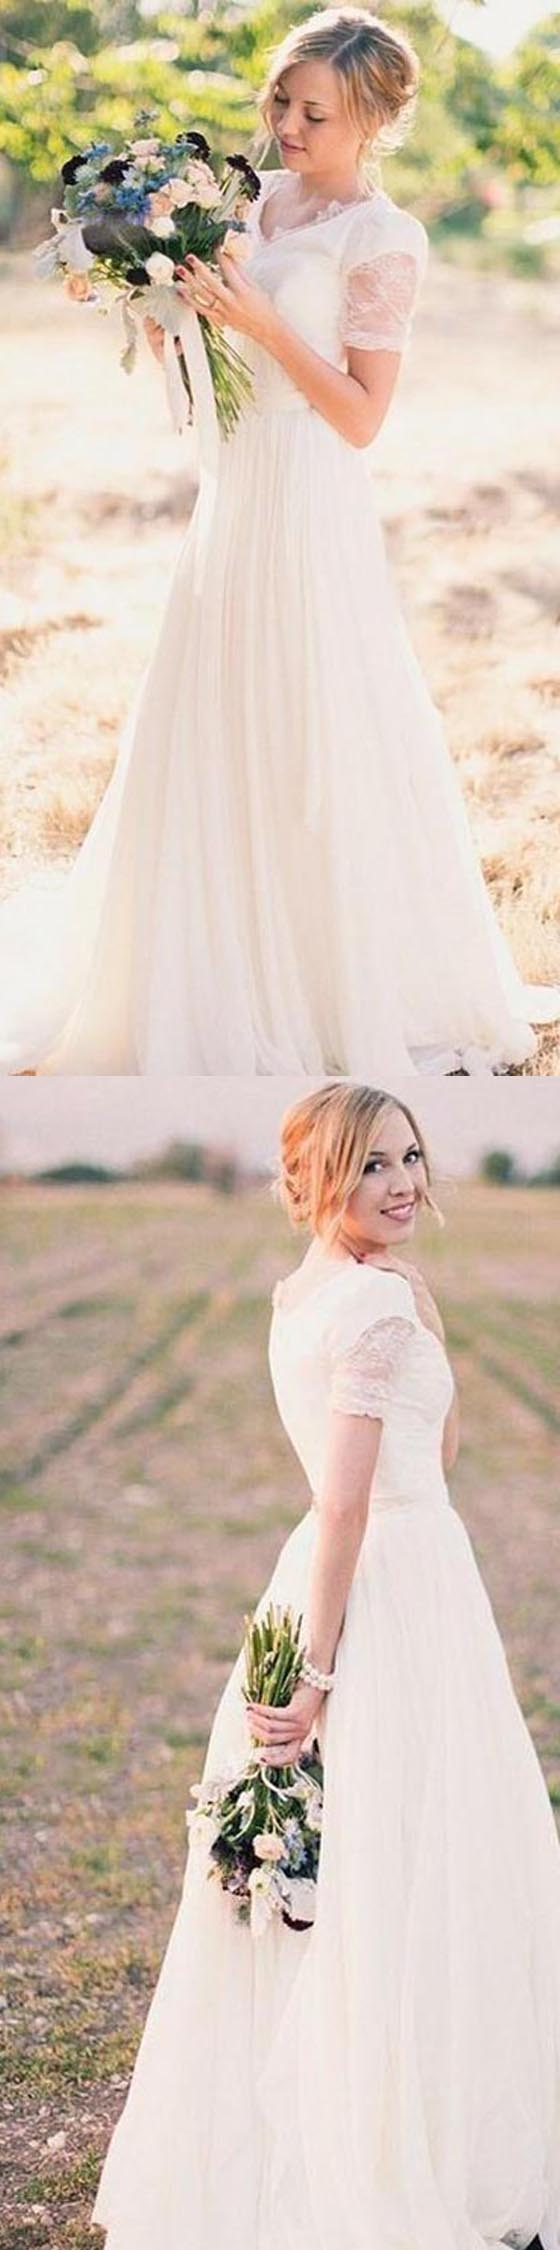 Short Sleeve Lace Chiffon Wedding Dresses, Country Wedding Dresses ...